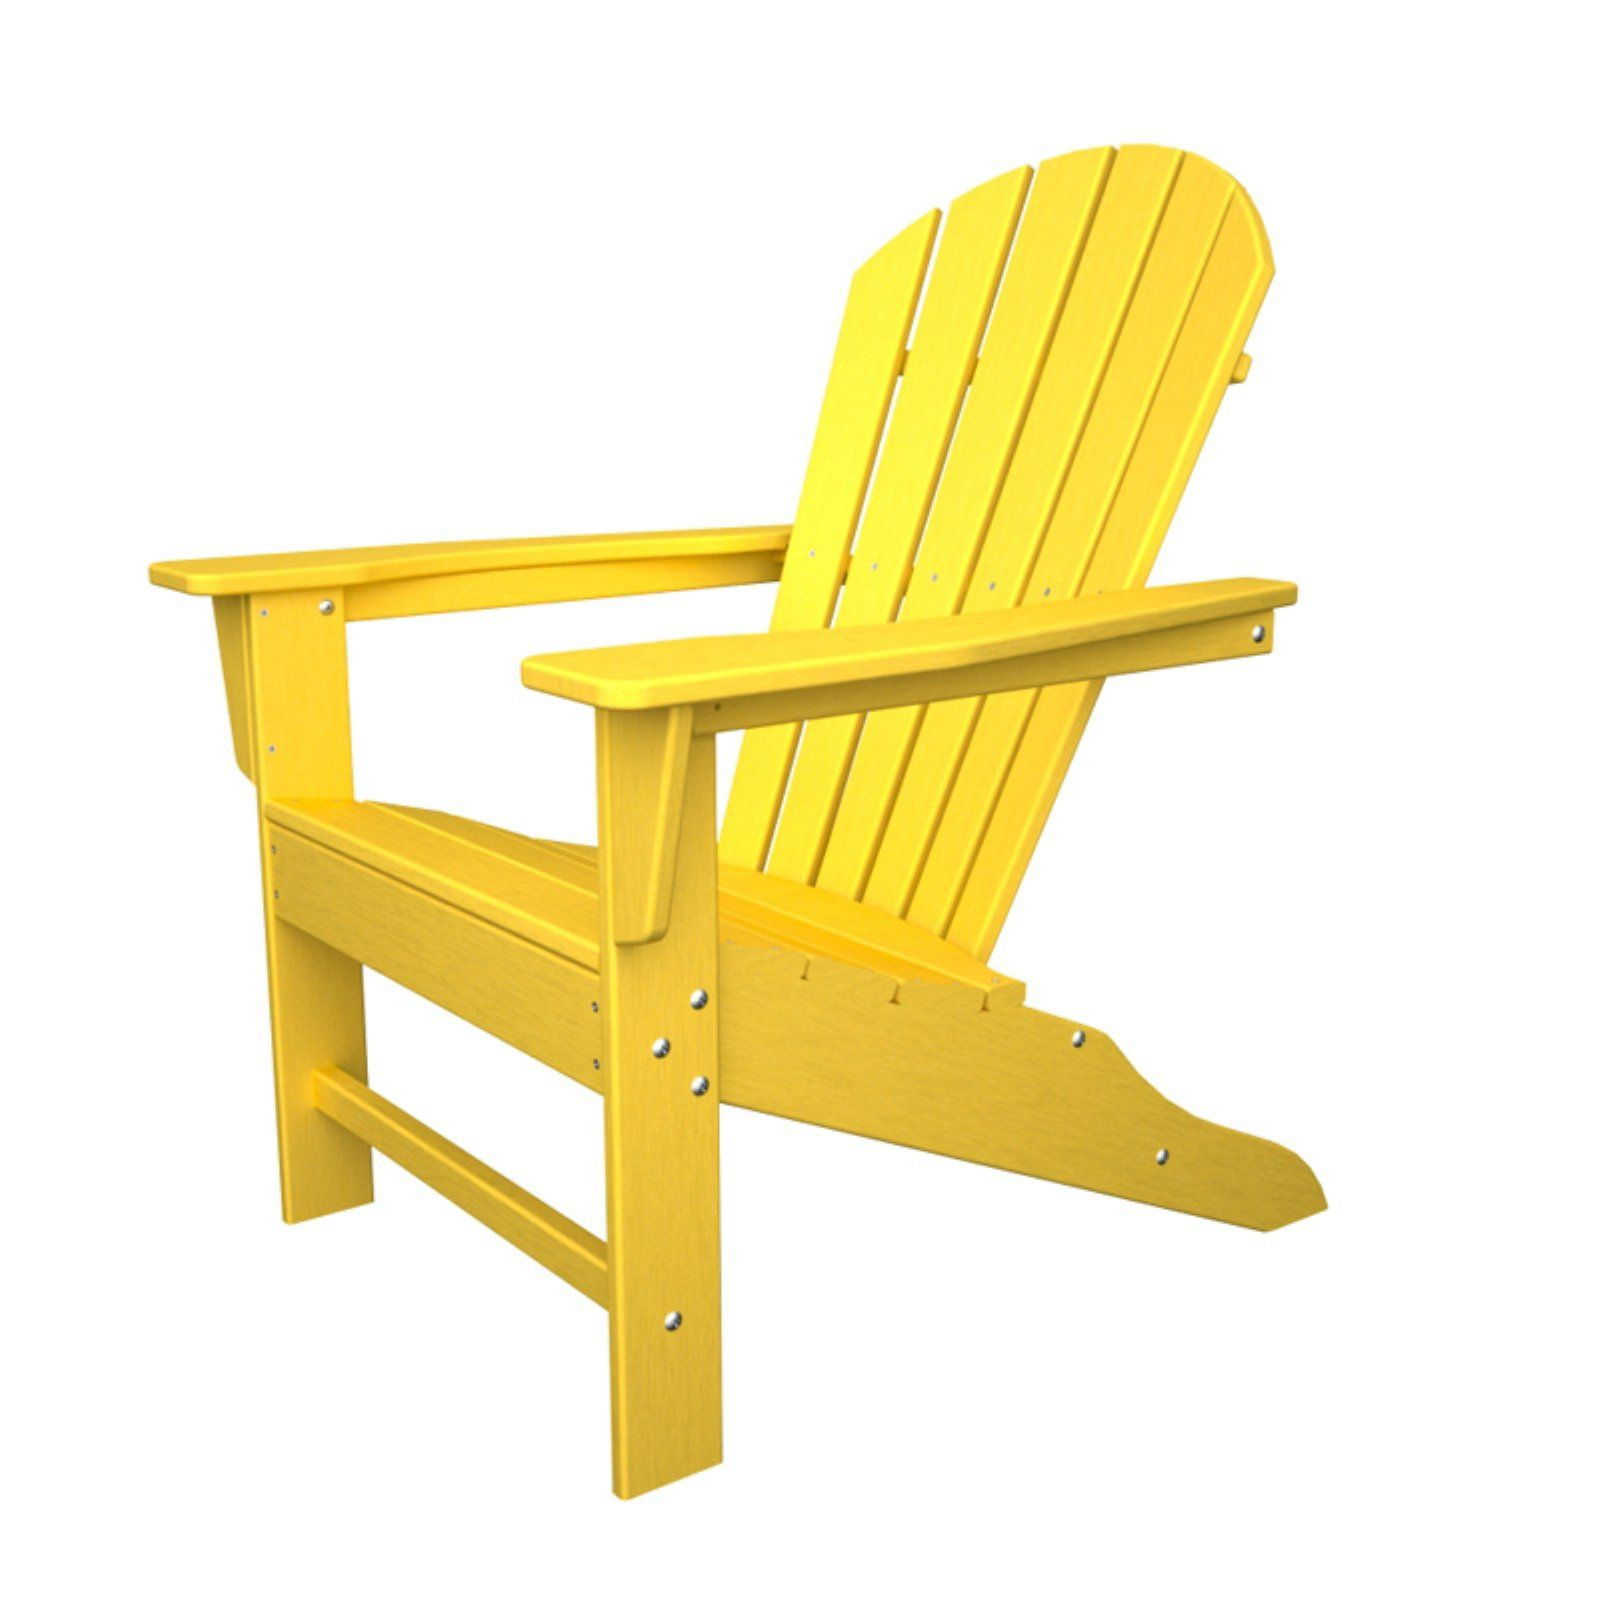 Outdoor Polywooda South Beach Recycled Plastic Adirondack Chair